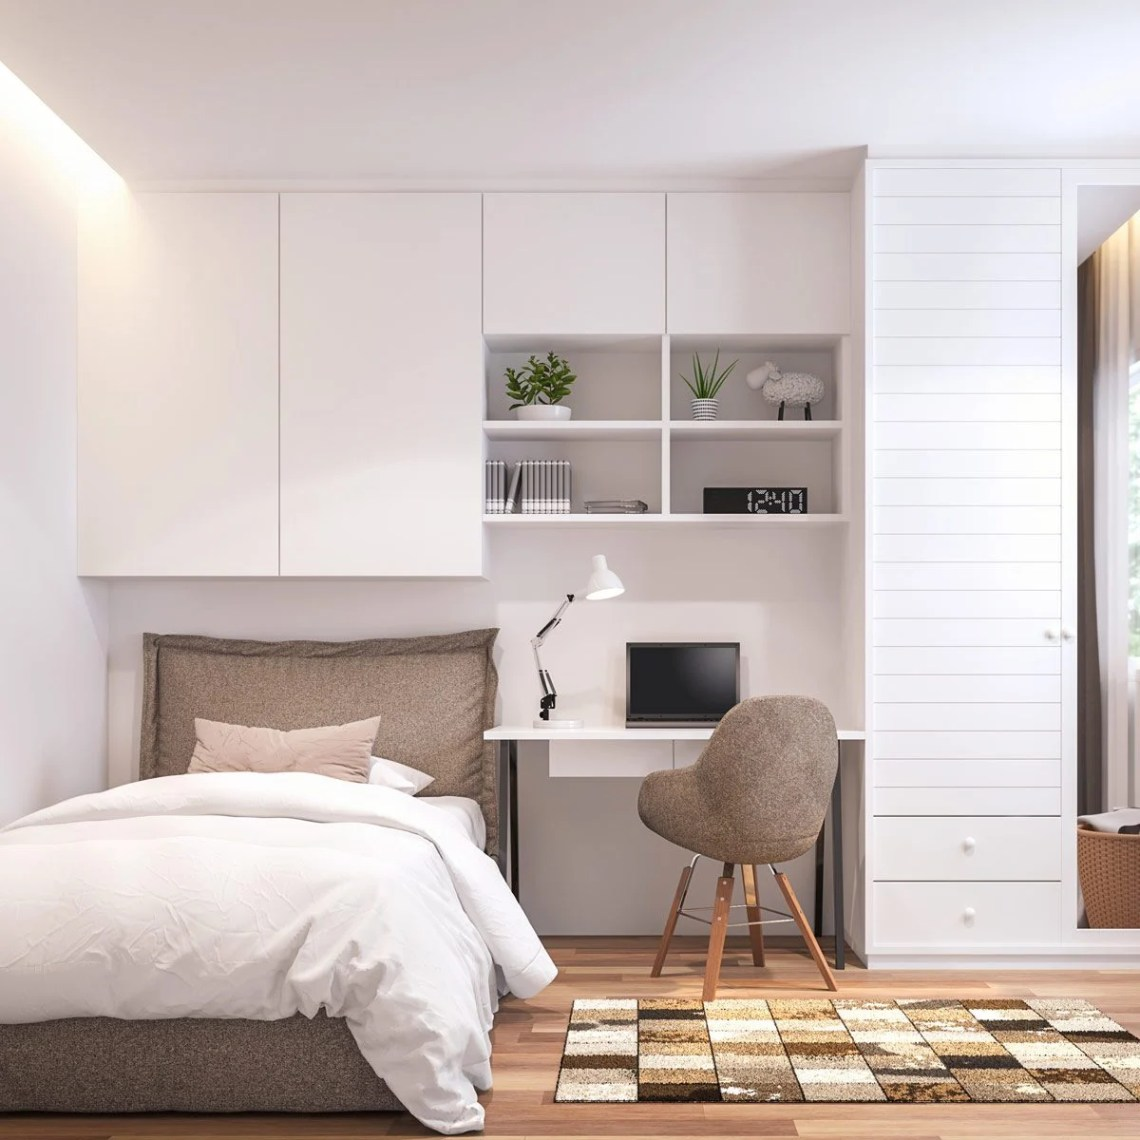 How to Organize a Small Bedroom to Maximize Space | Family ...